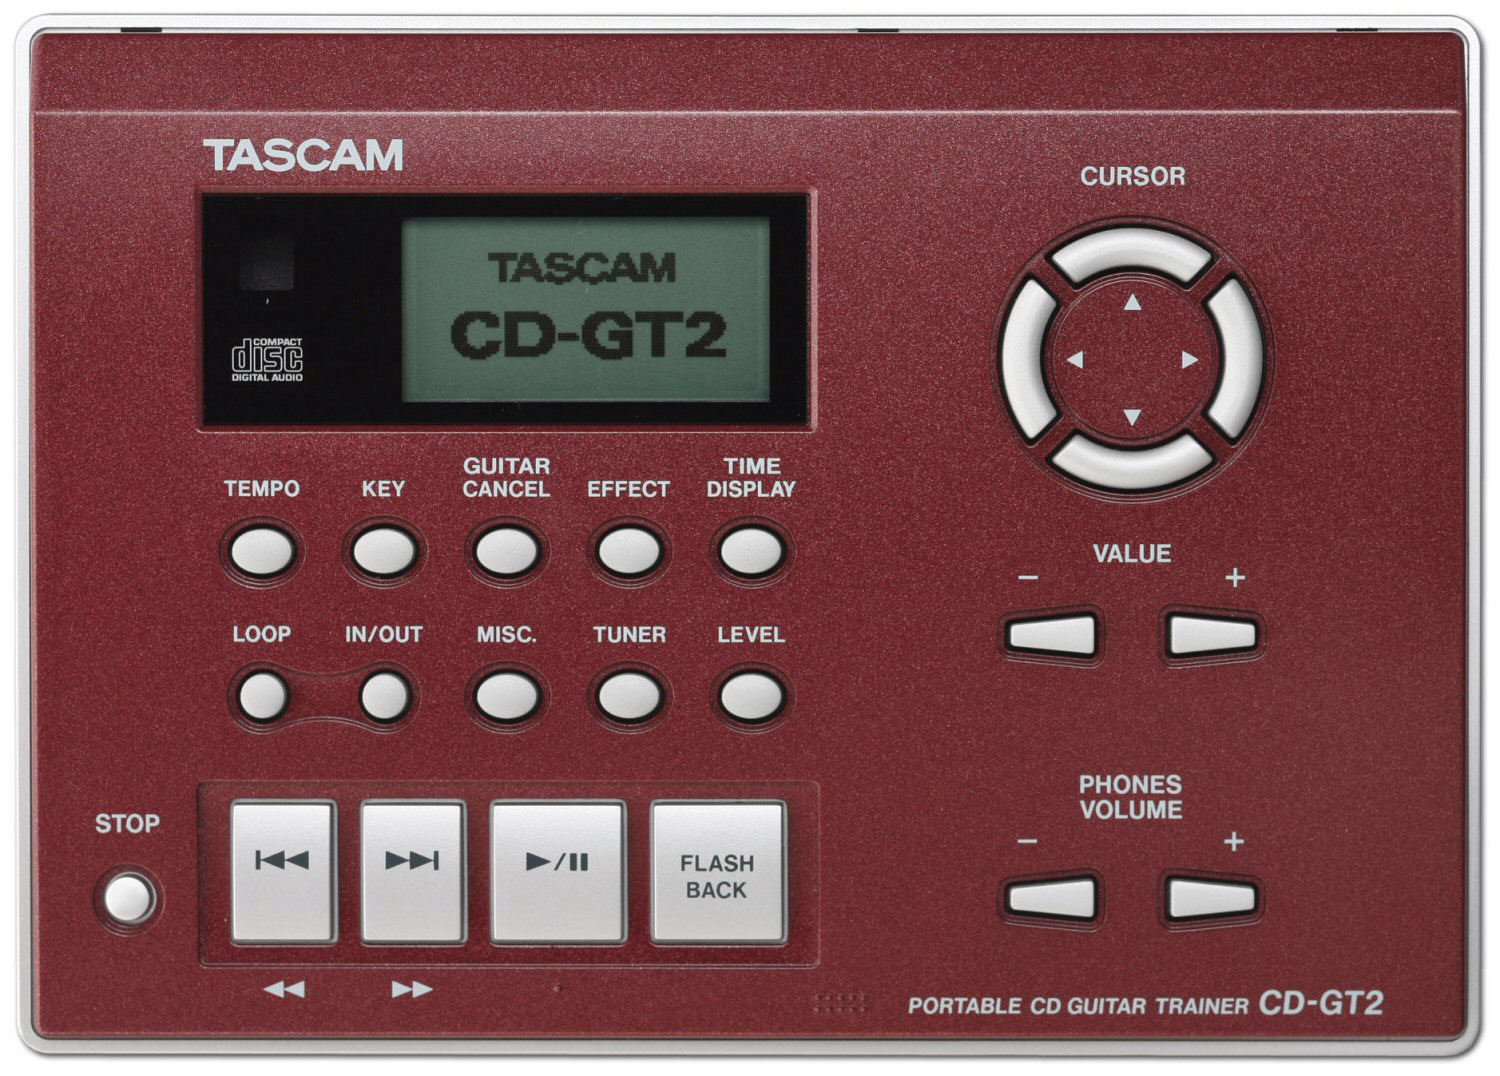 tascam cd gt2 cd player guitar trainer. Black Bedroom Furniture Sets. Home Design Ideas